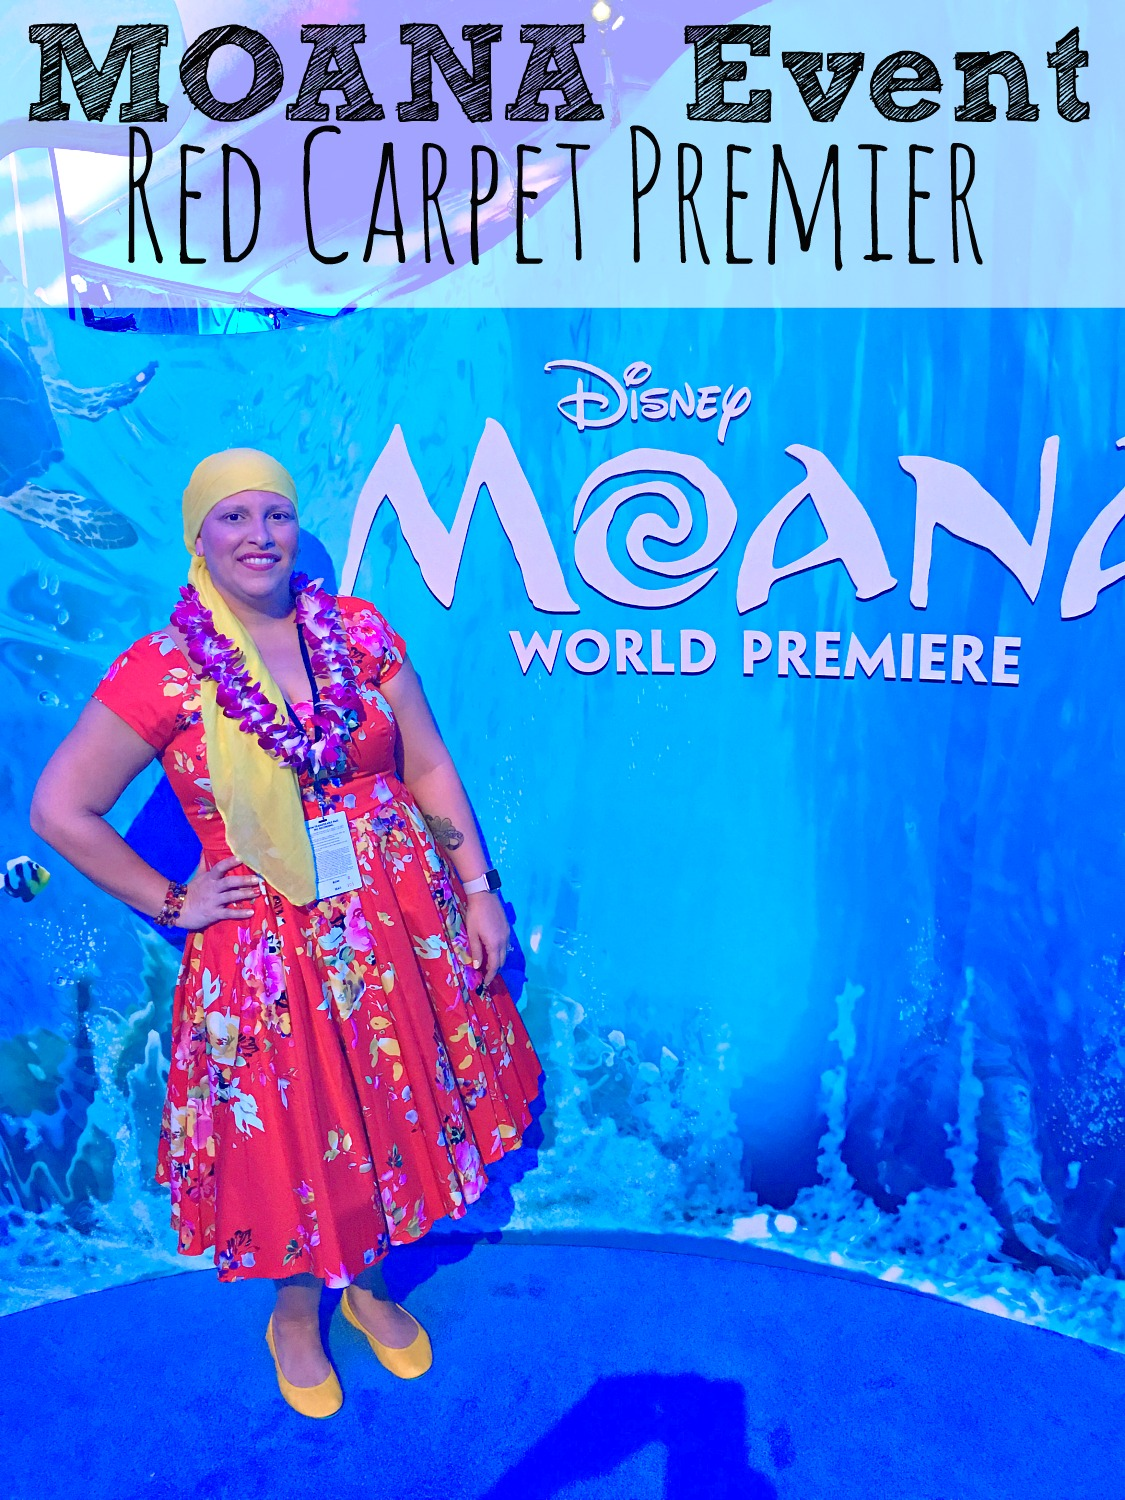 Moana Event Red Carpet Premier